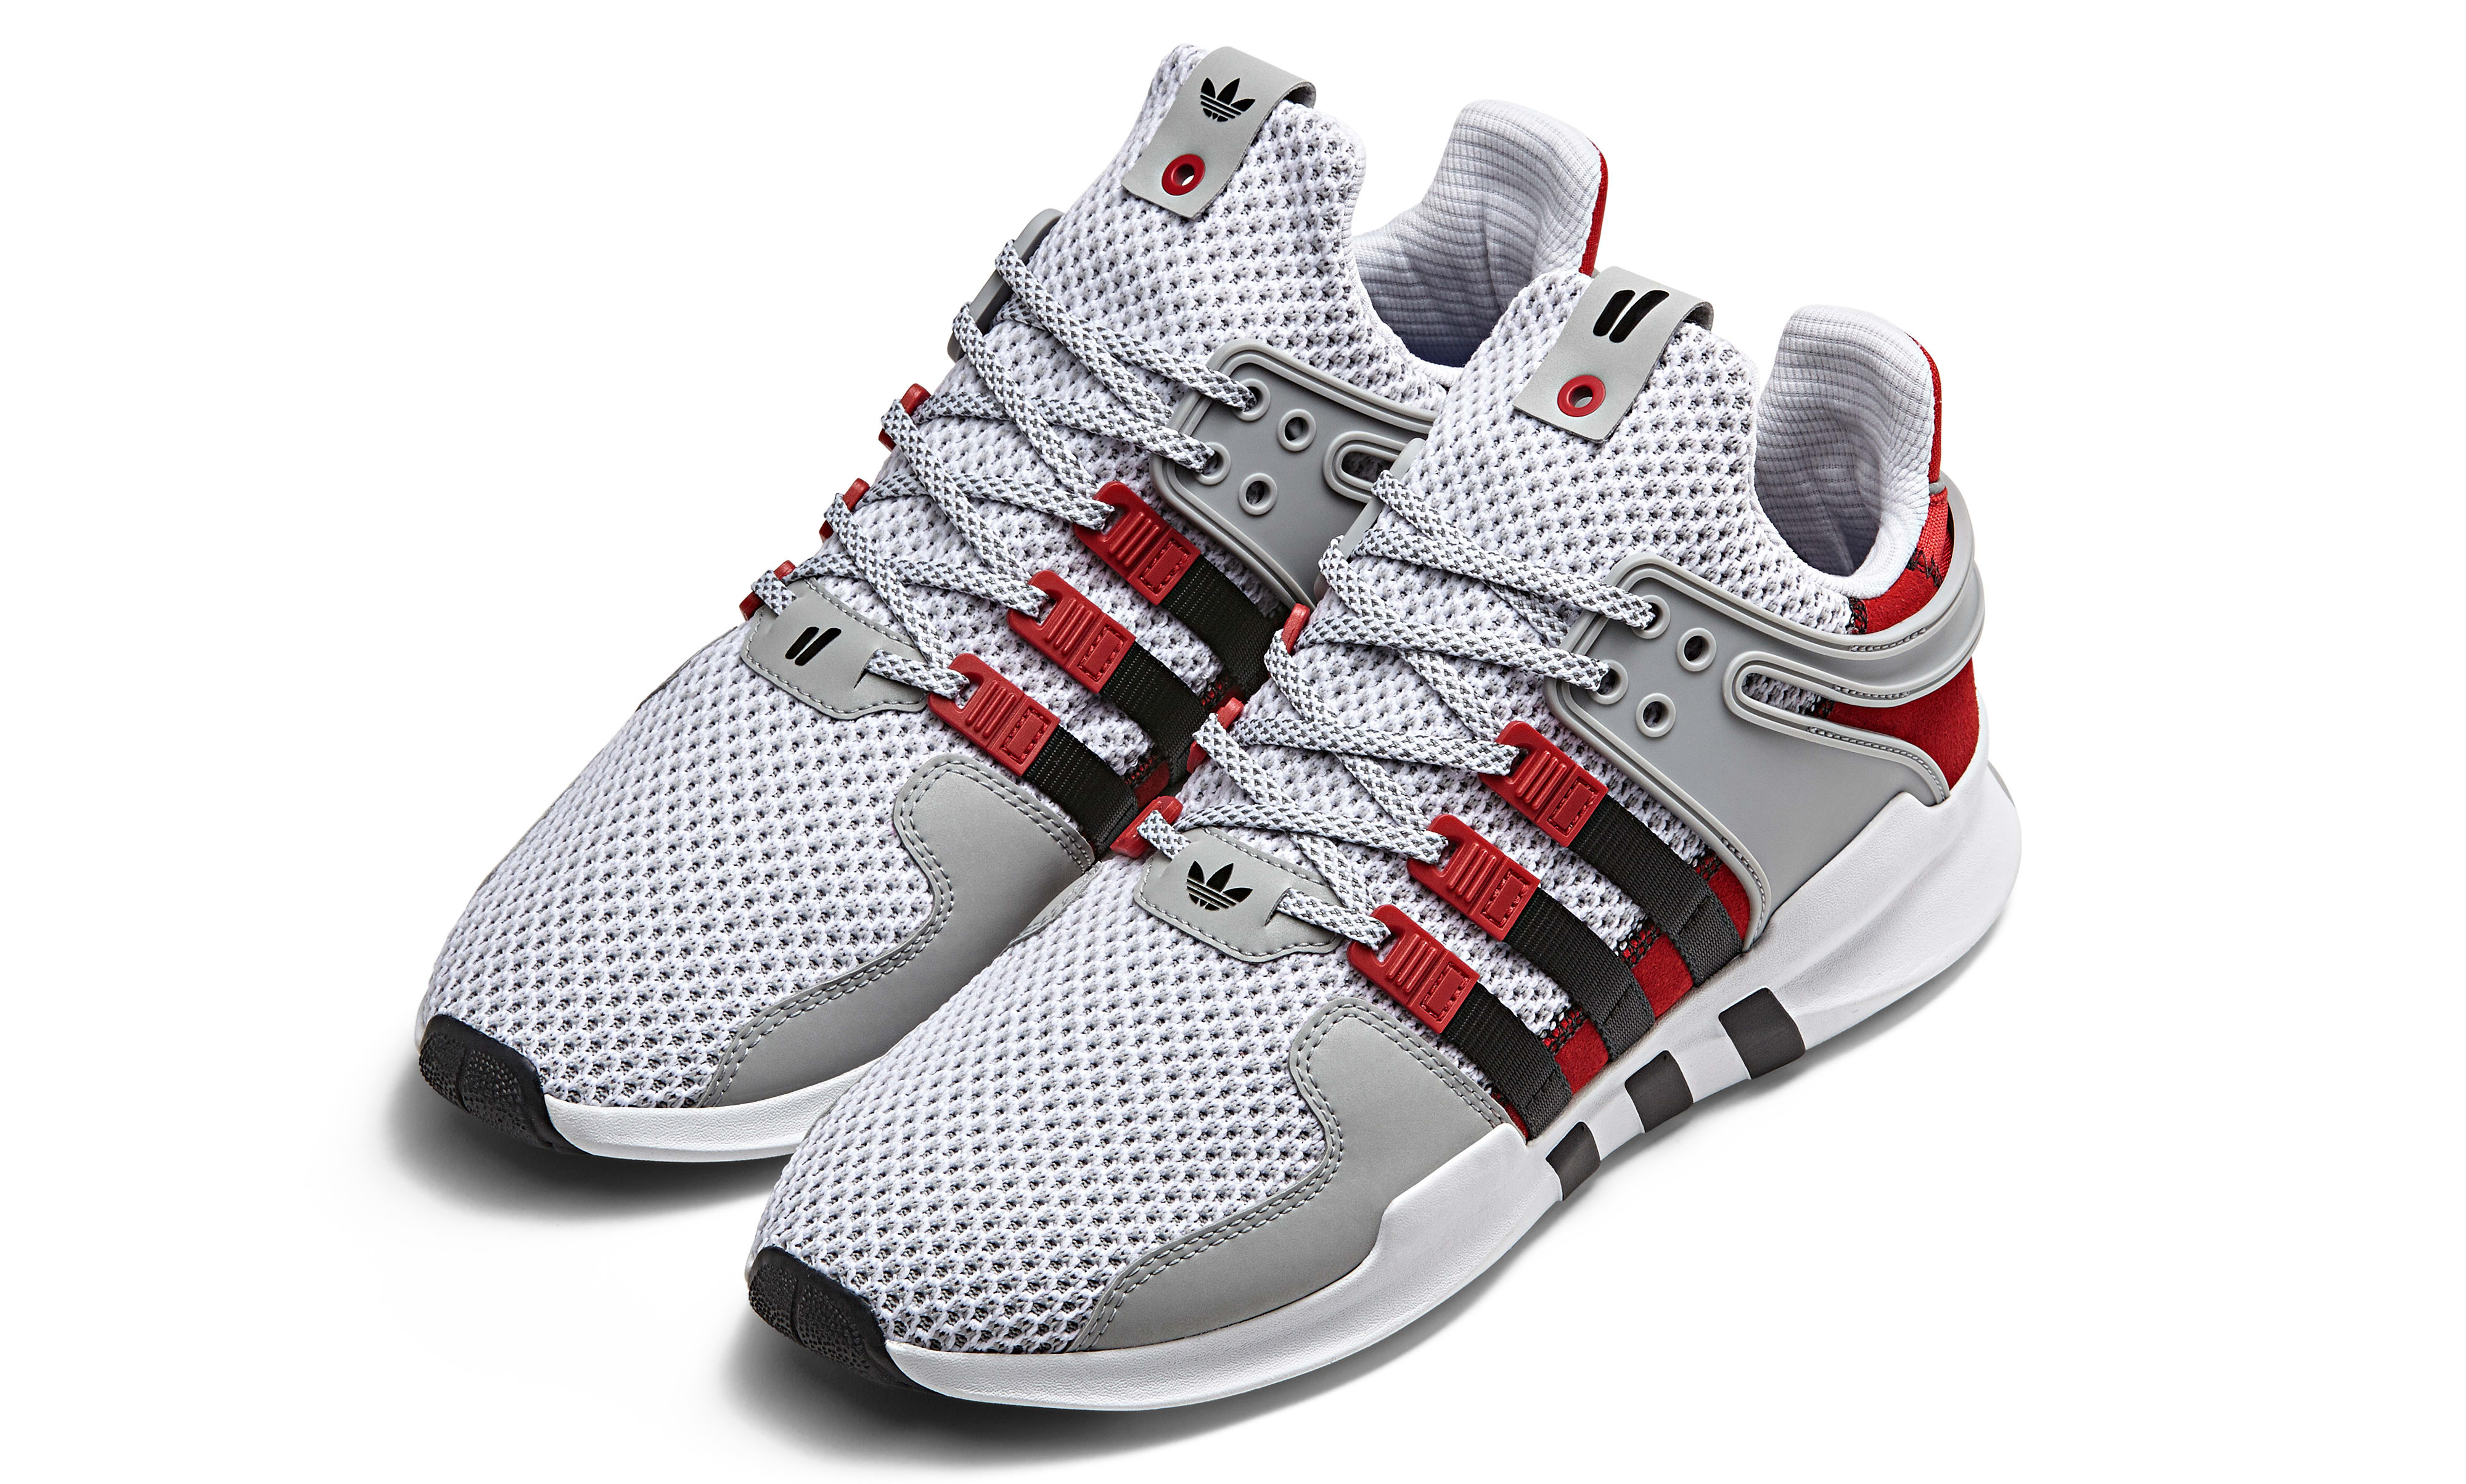 sale retailer d474c 3e57d Adidas Adidas Consortium x Overkill EQT Support ADV  WHITE Size 9.5 -  Low-Top Sneakers for Sale - Grailed